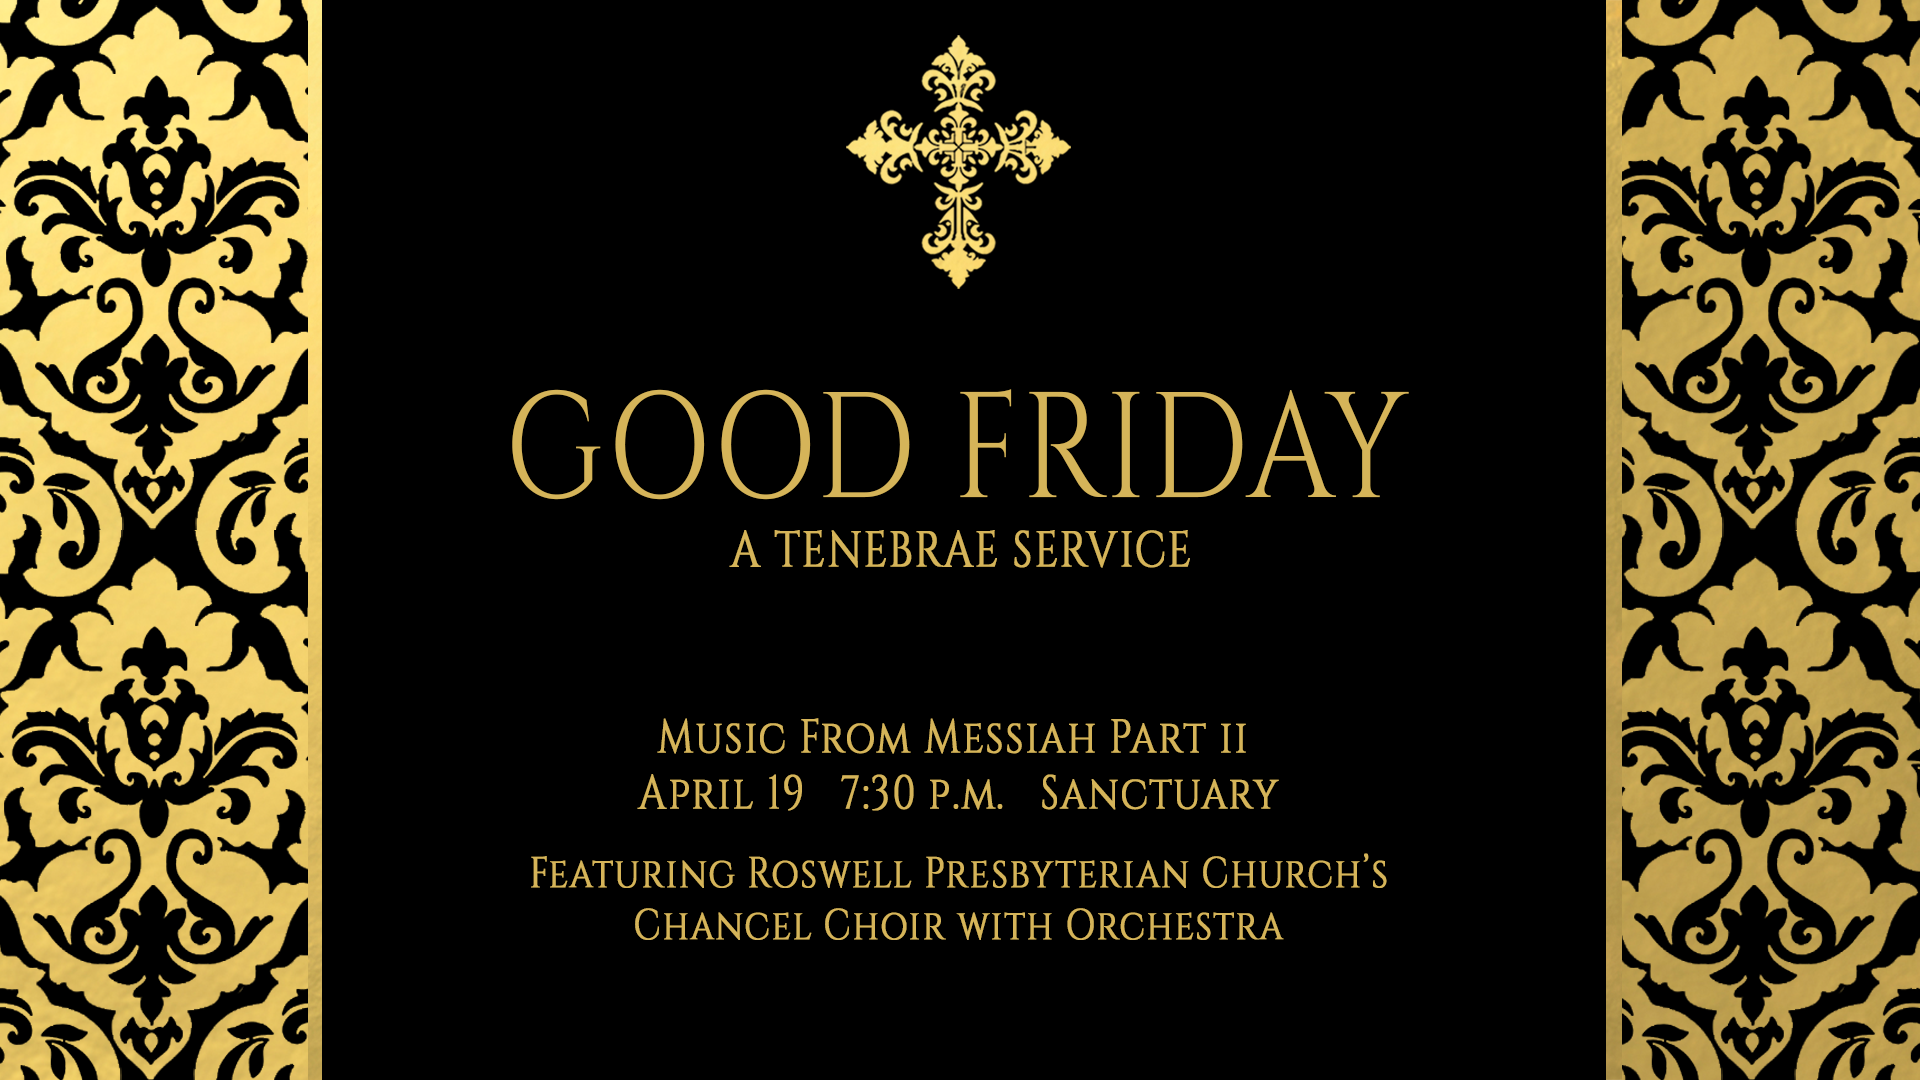 Good Friday  Friday, April 19  7:30 p.m. in the Sanctuary Tenebrae Service of Darkness  Childcare available with a reservation,  call the Church Office,  770-993-6316